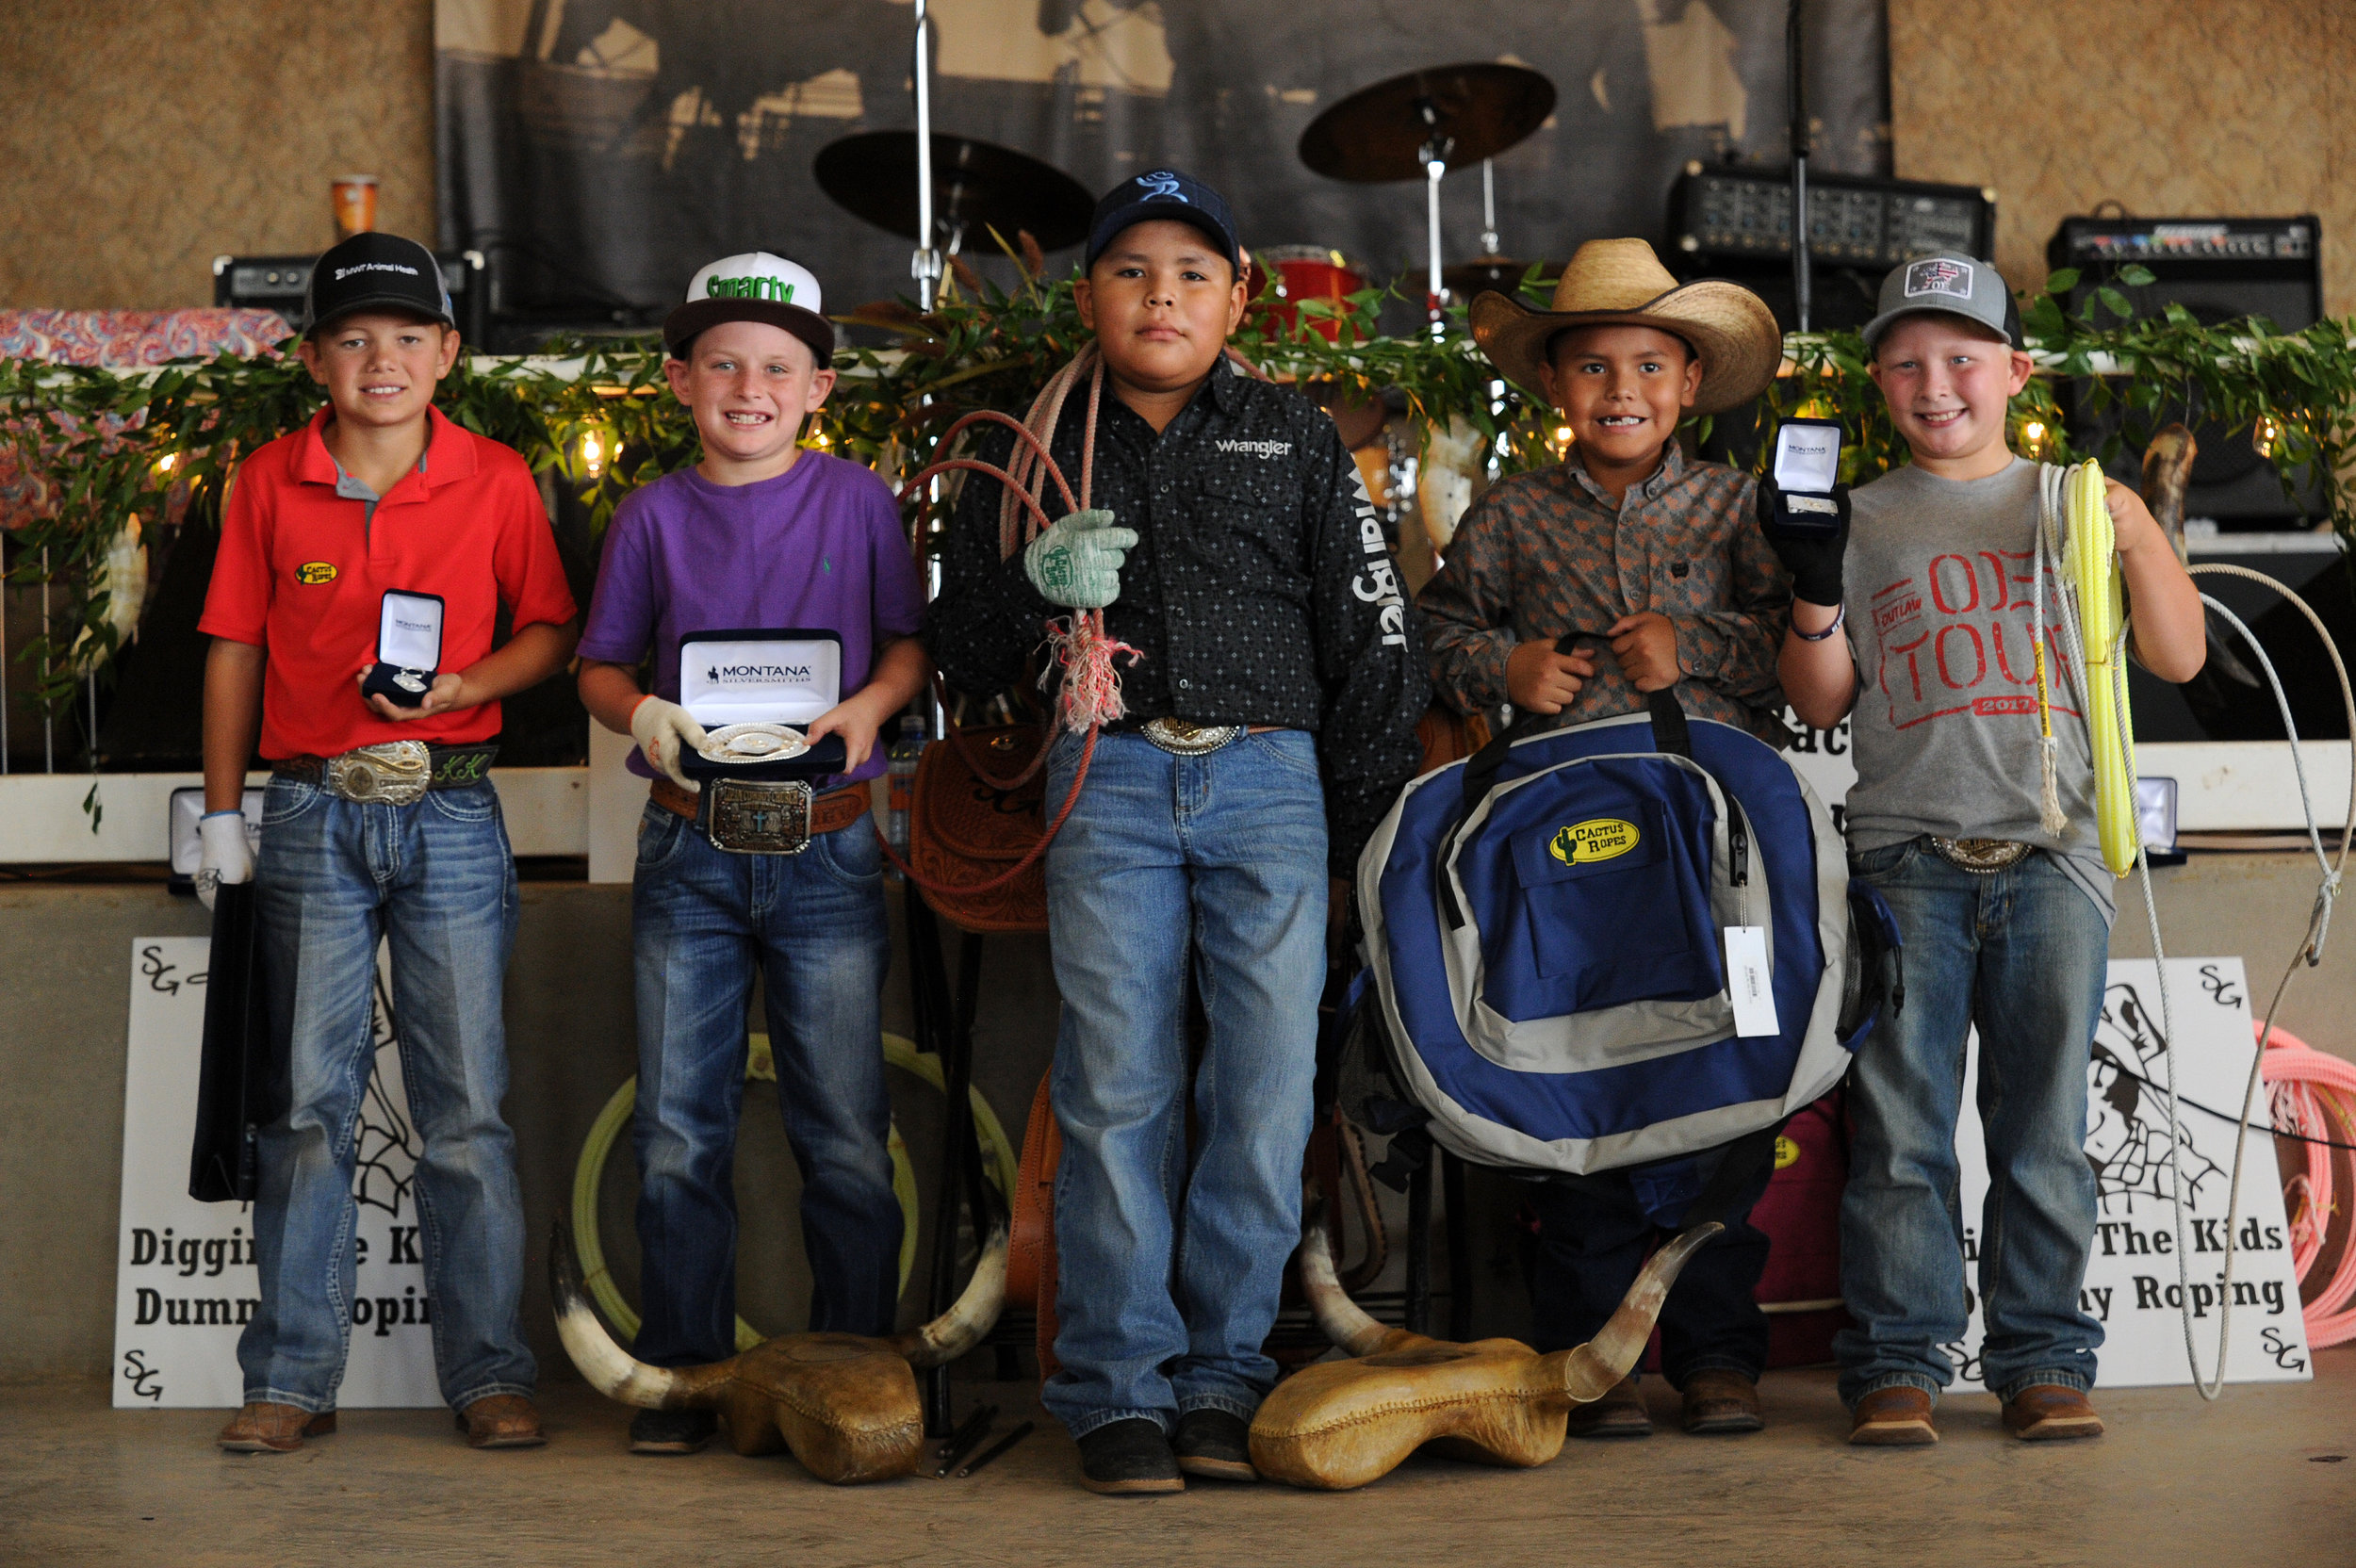 2017 SG Dummy Roping Award Middle Age Group.jpg